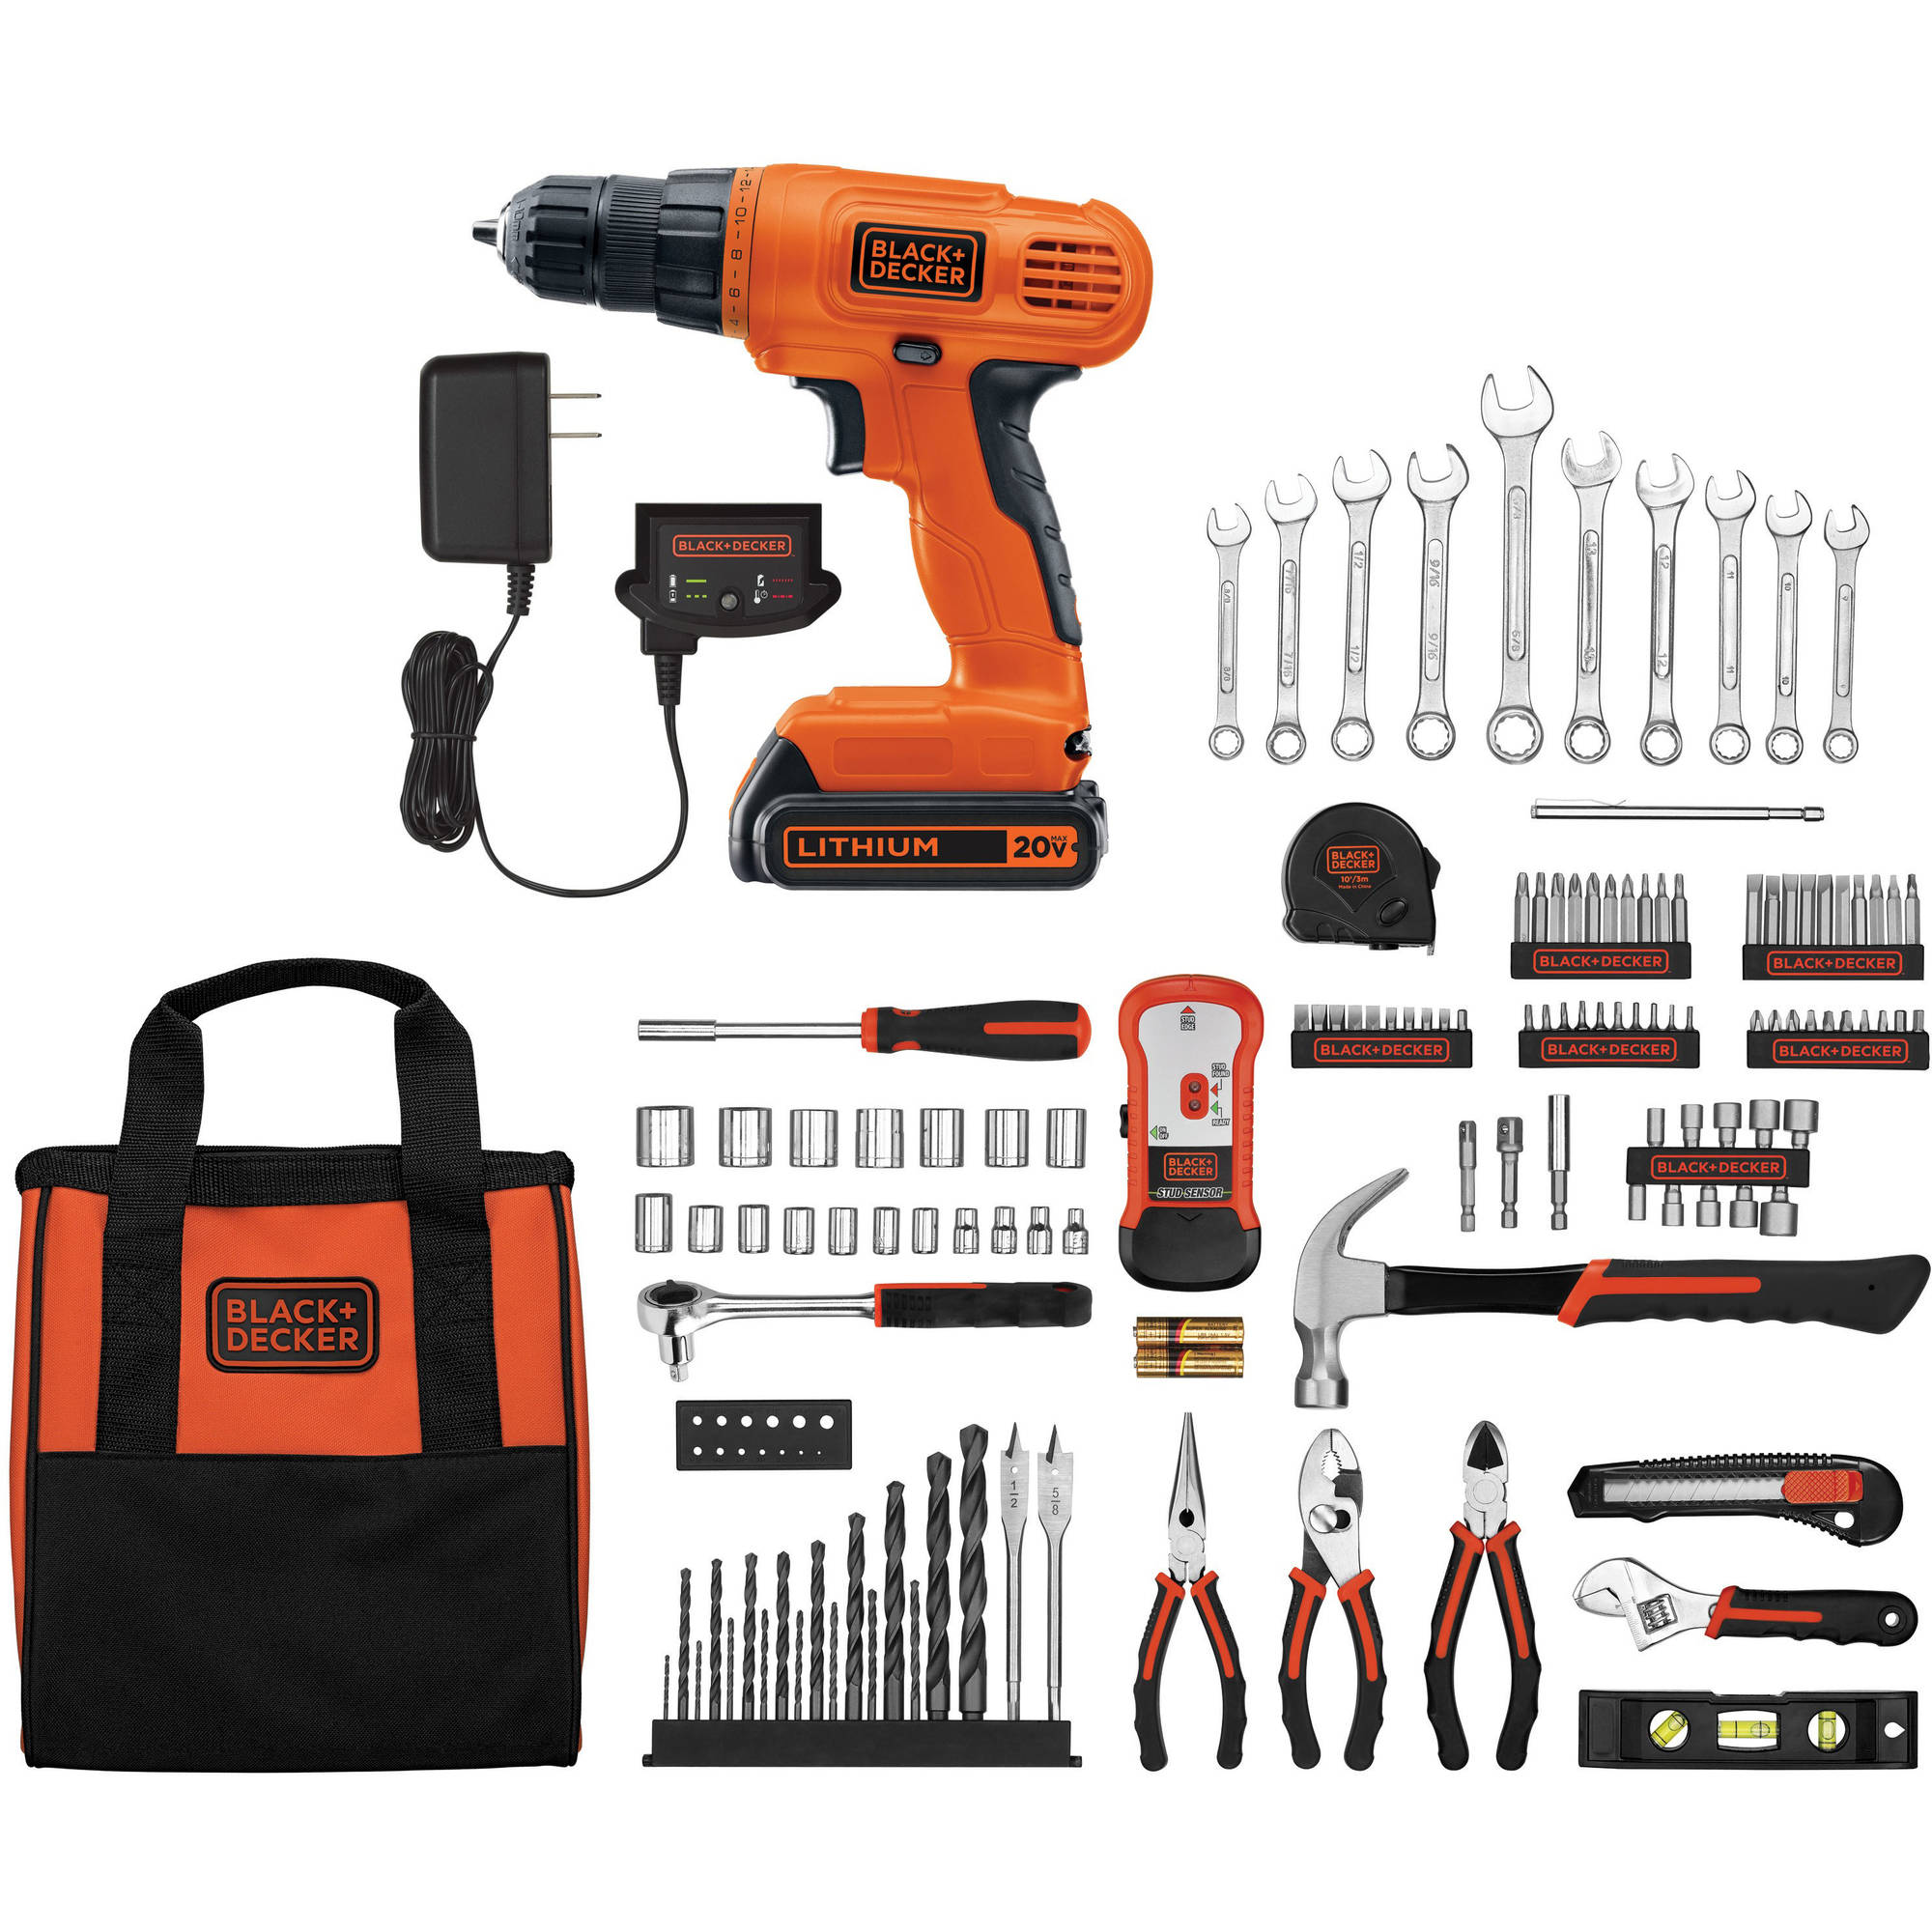 black and decker 20v lithium drill driver with 128 piece project kit 885911491808 ebay. Black Bedroom Furniture Sets. Home Design Ideas